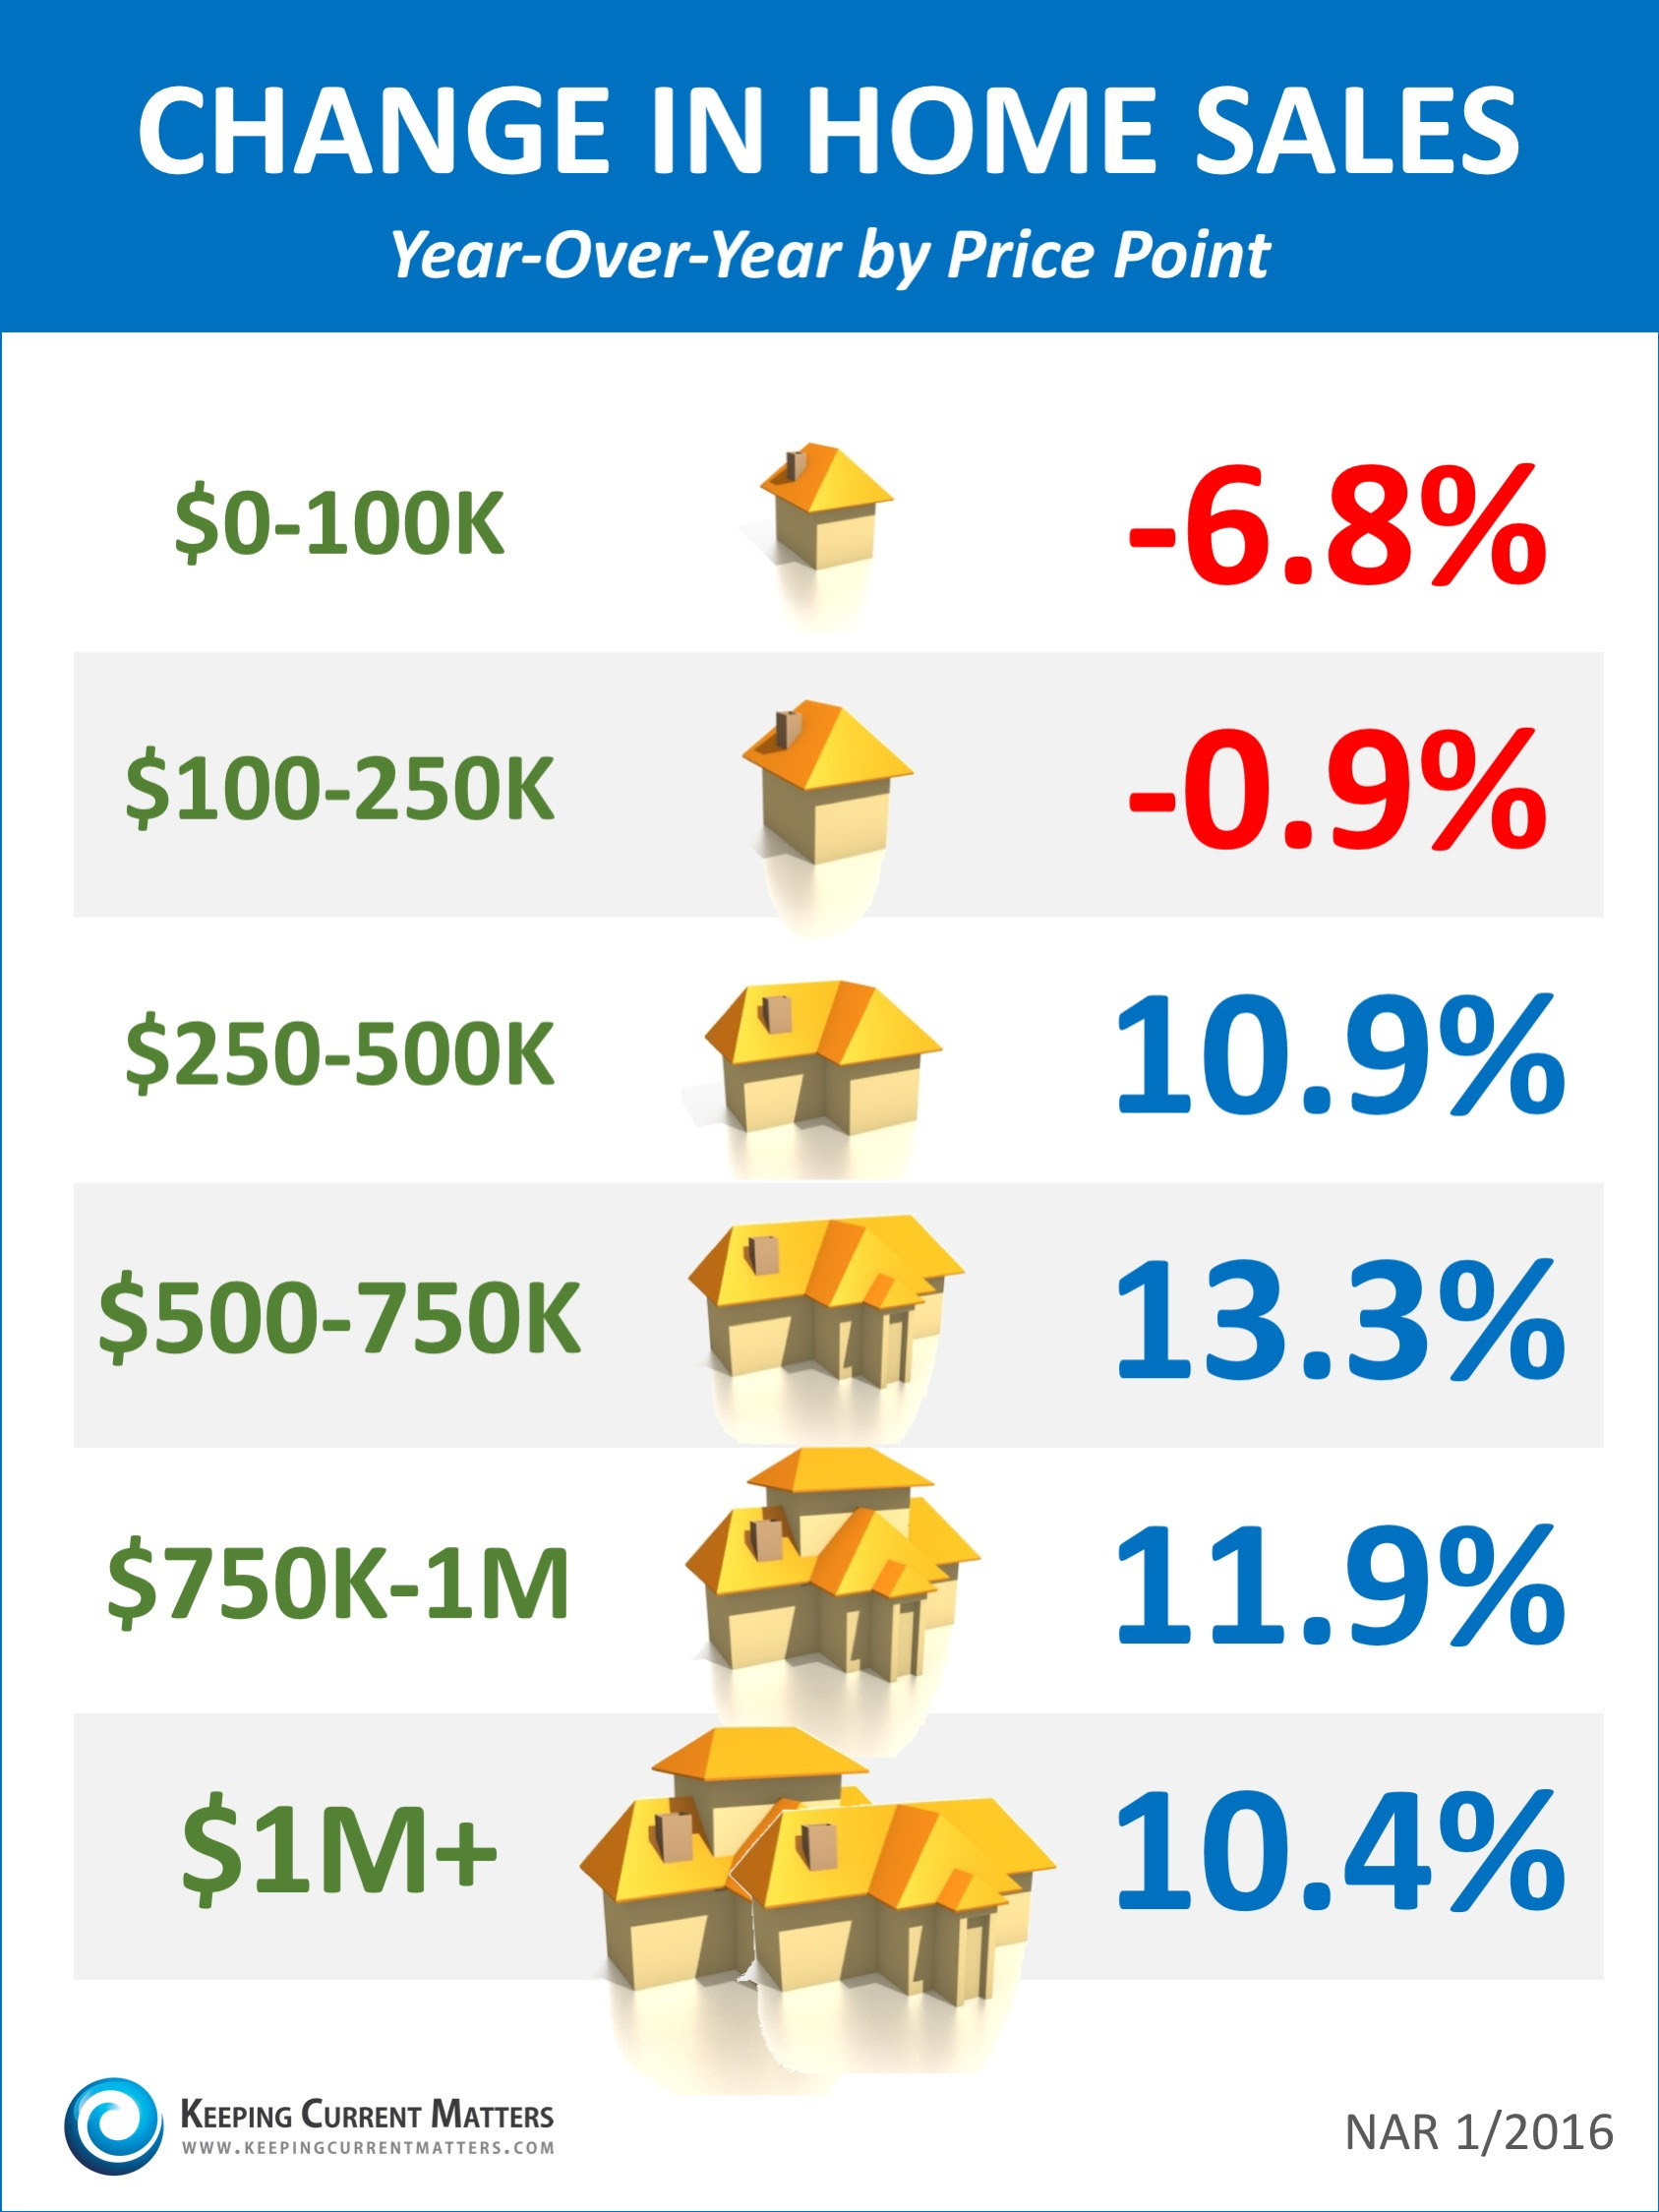 Change In Home Price By Range 1-2016